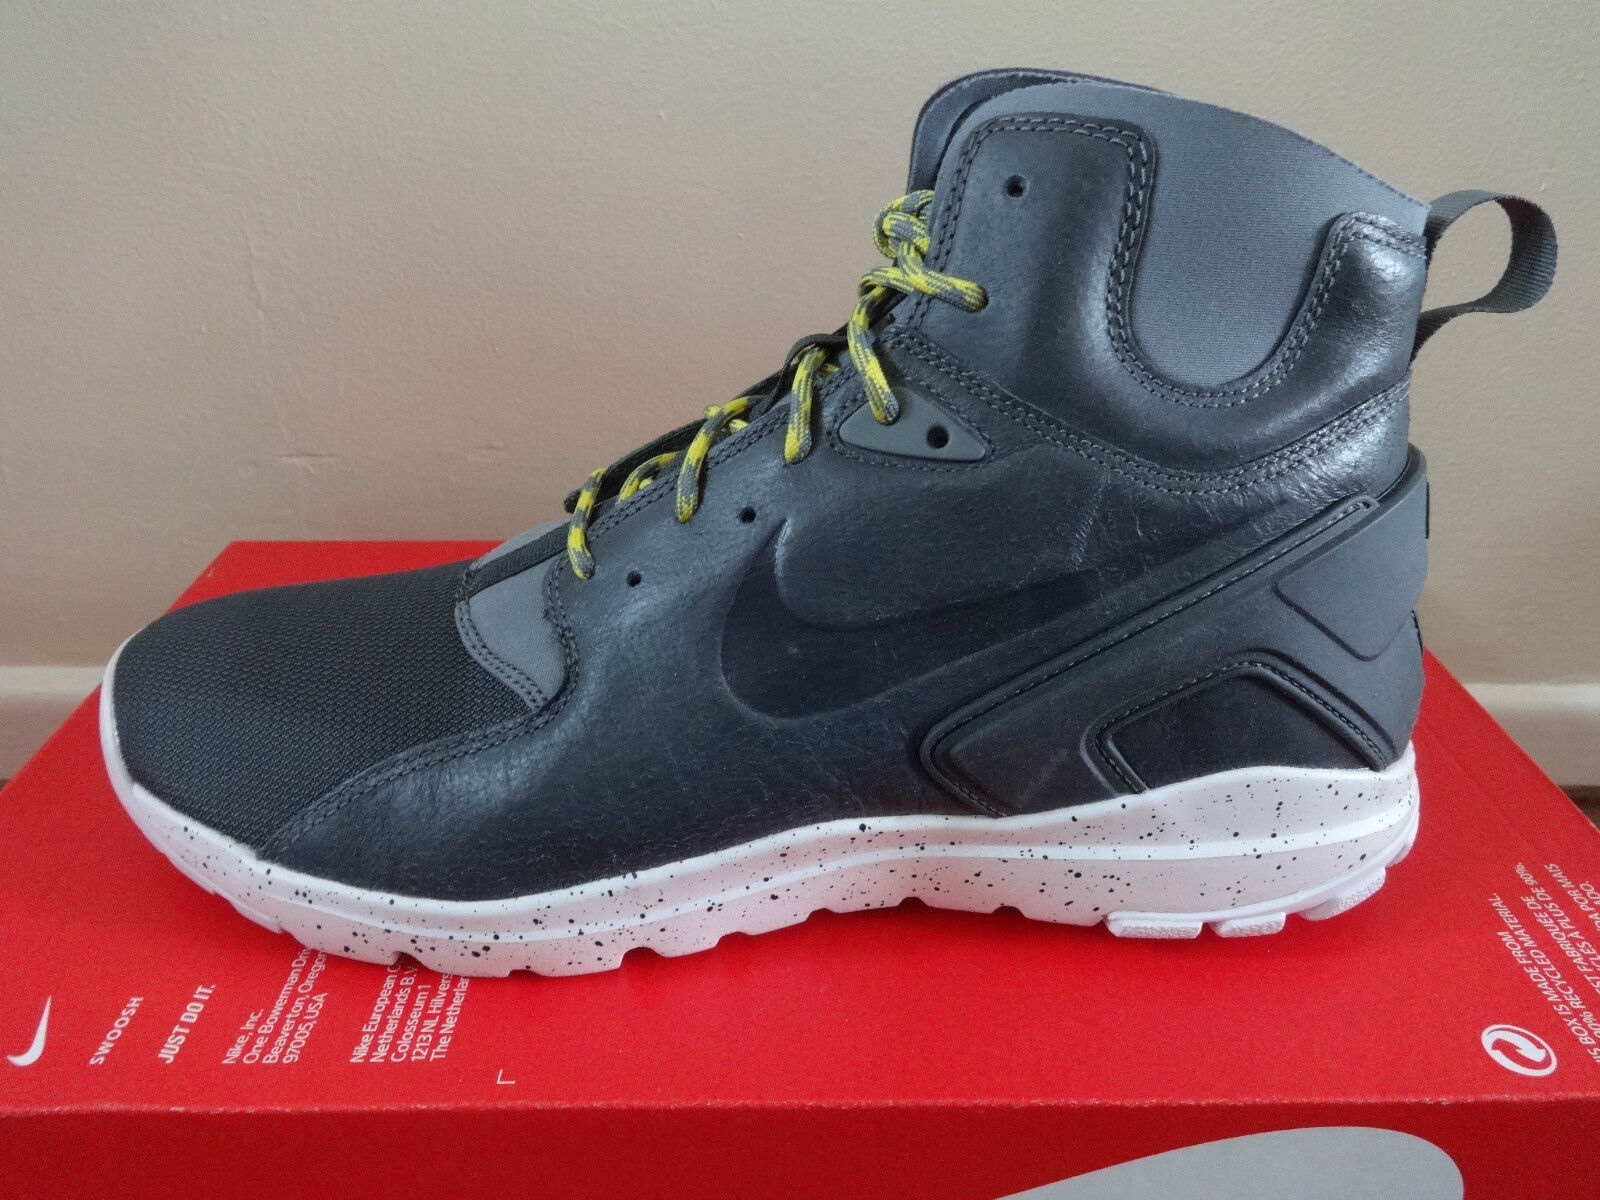 Nike Koth sneakers Ultra Mid Hombre trainers sneakers Koth Zapatos 749484 010 NEW+BOX b60e94